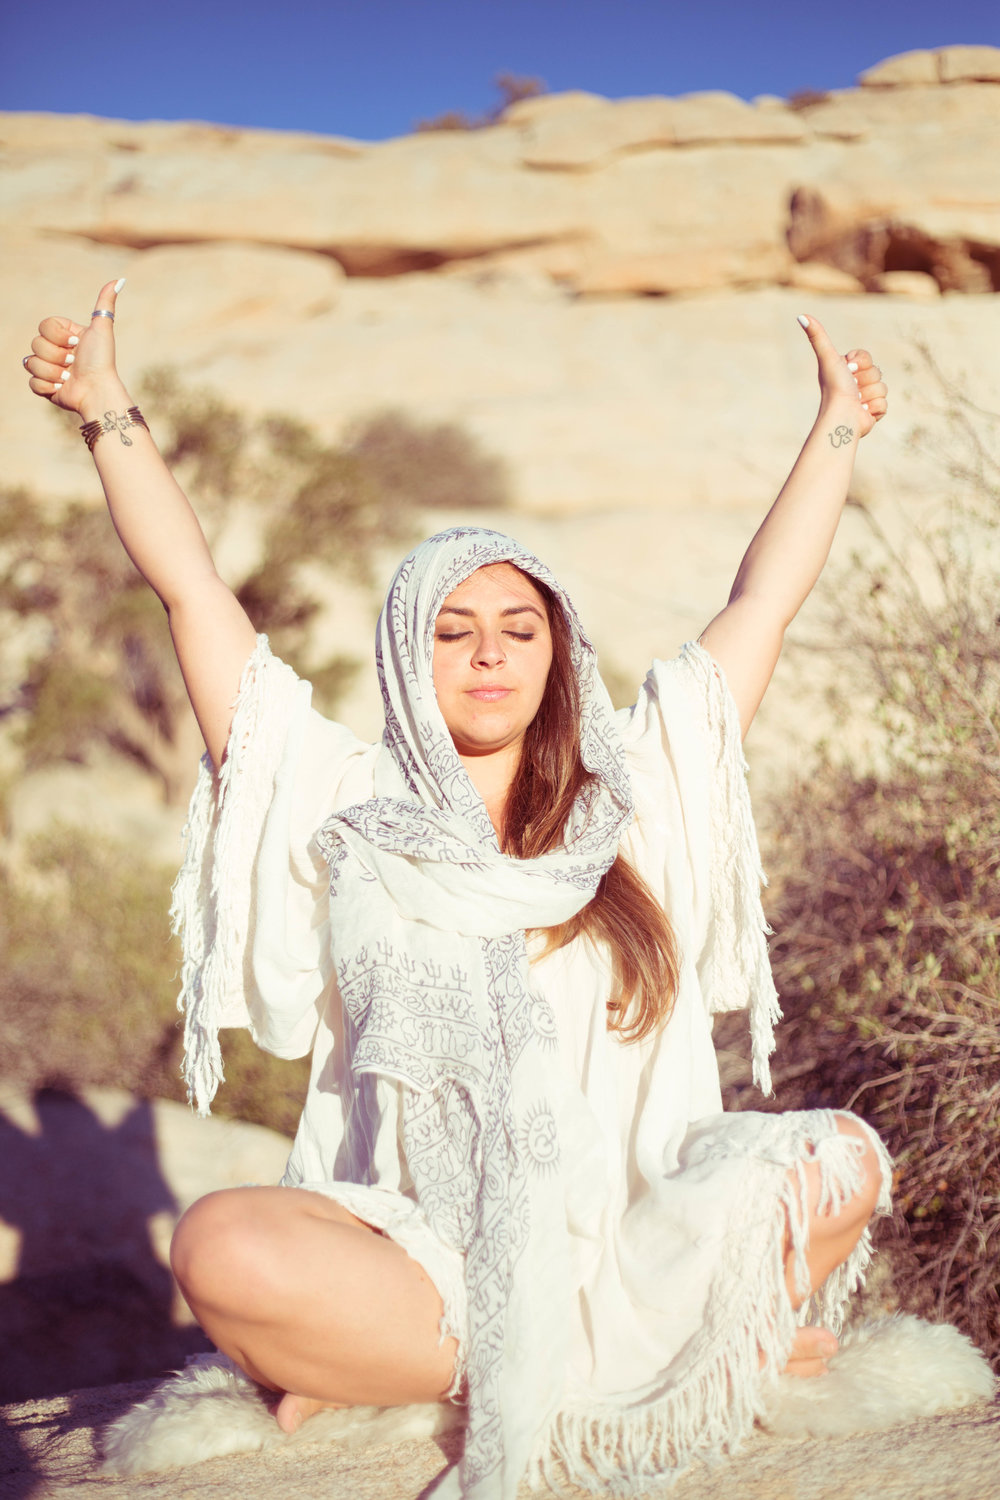 Embracing Kundalini Yoga | An Introduction to the Spiritual Technology of the Aquarian Age  Free Webinar // Wednesday 3.15 2PM PST